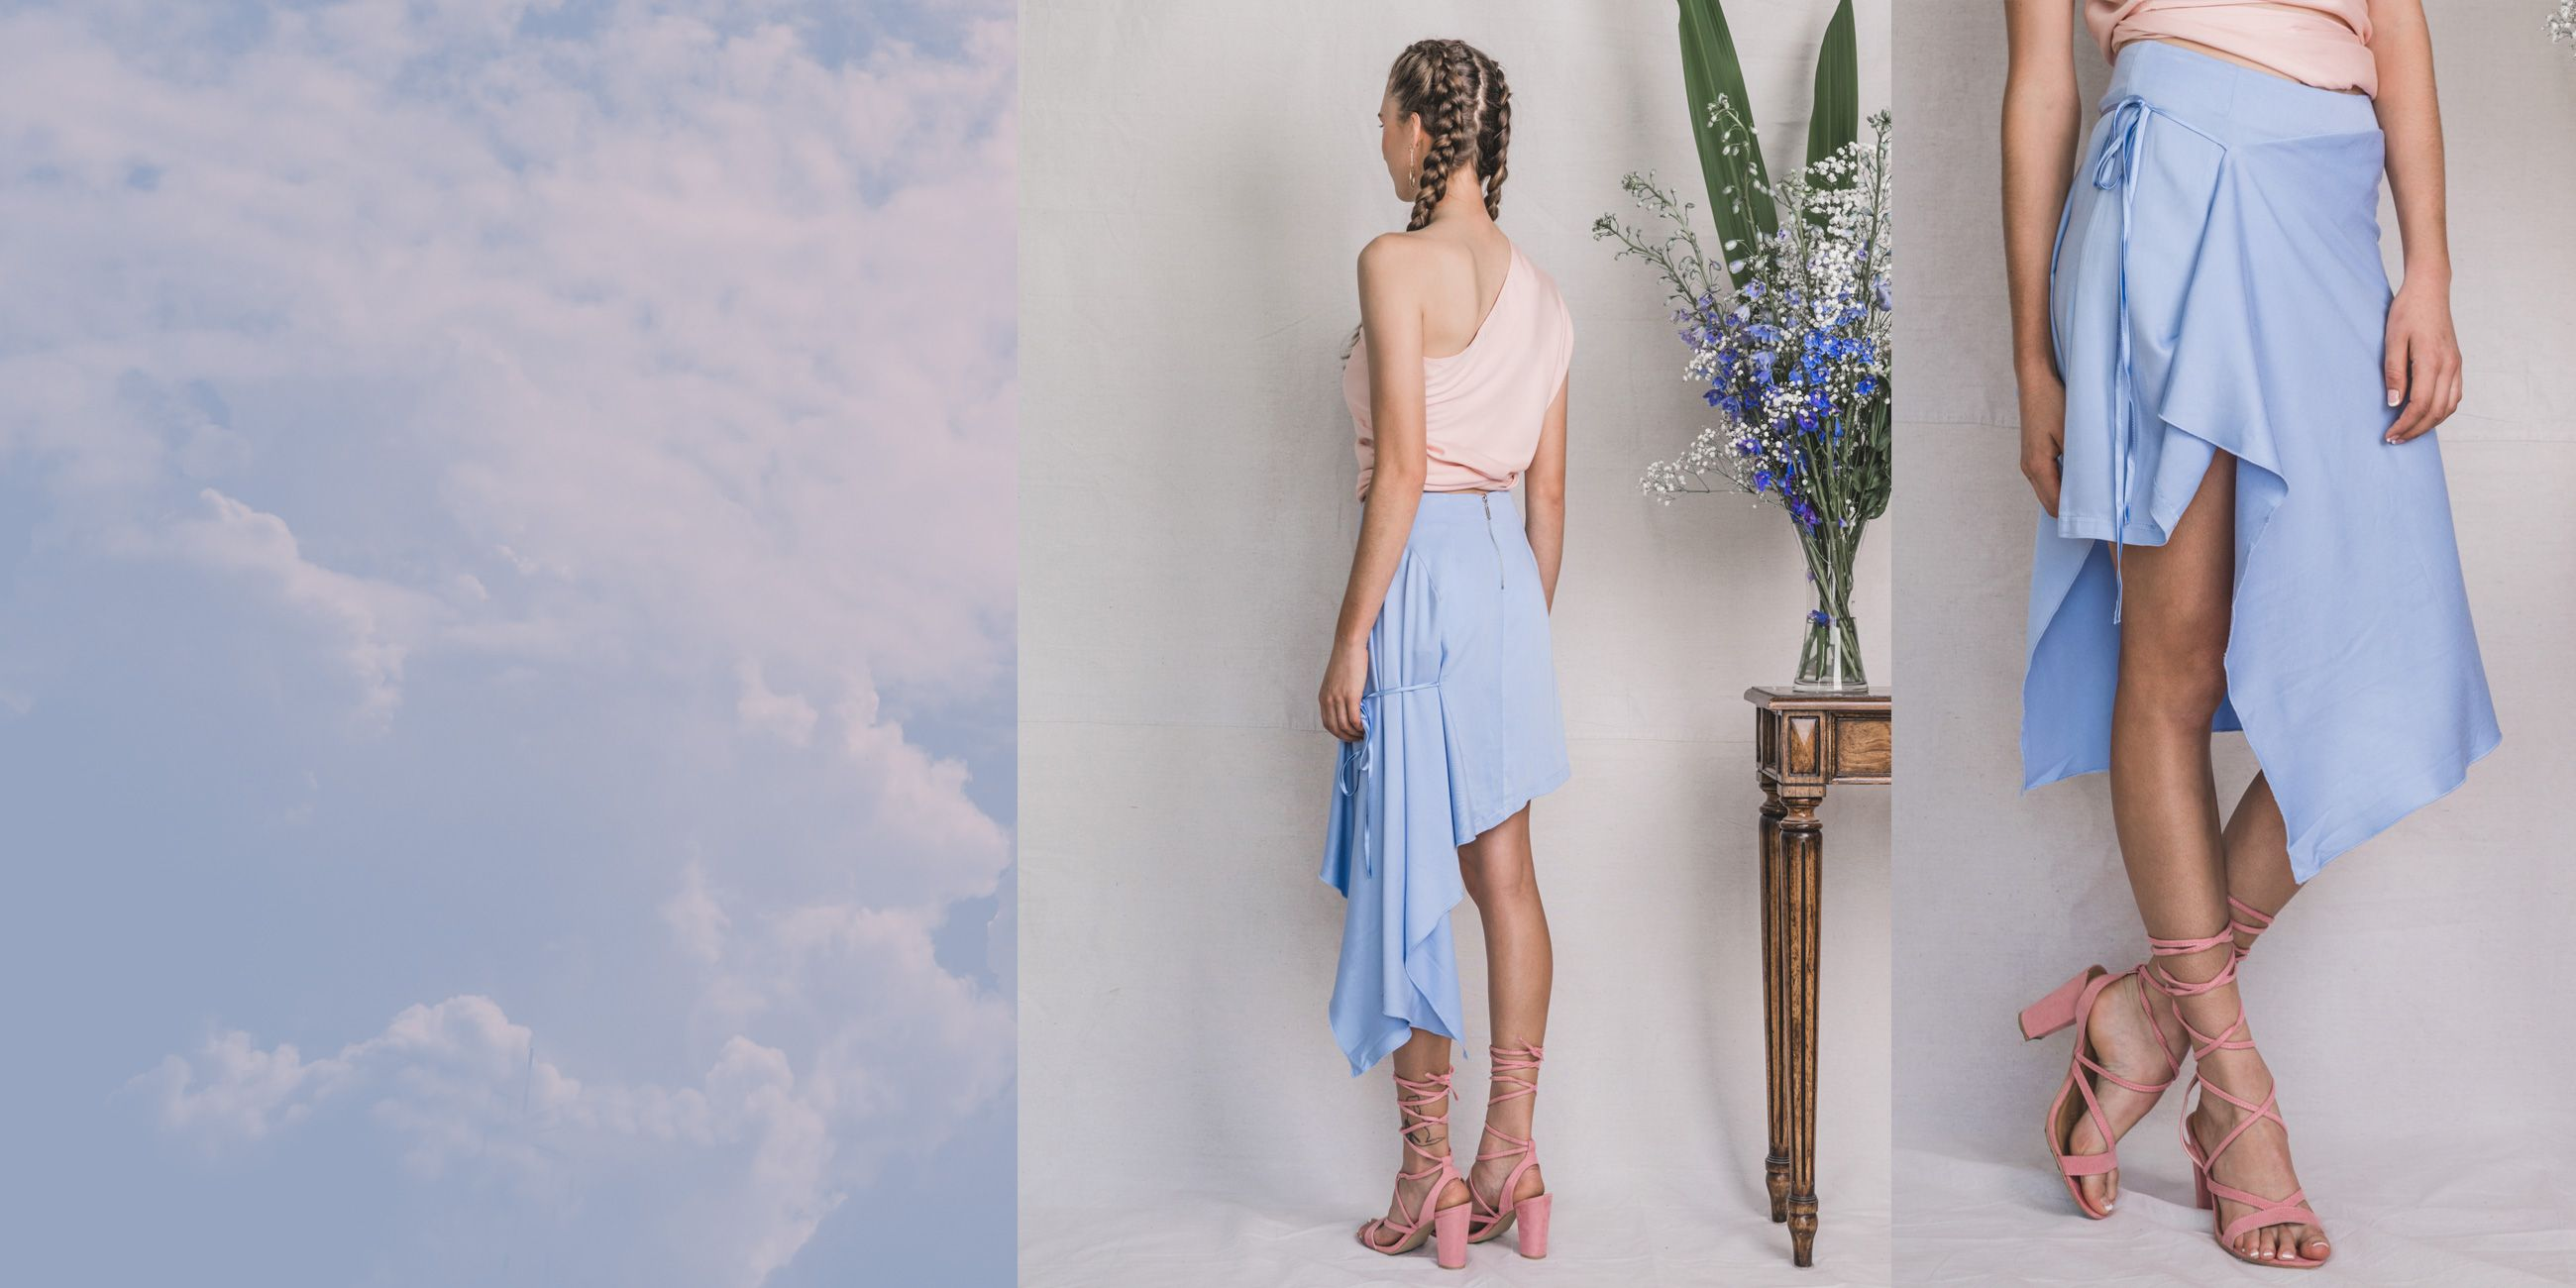 Ara Bamboo skirt in Serenity Blue – The Great Beyond 3